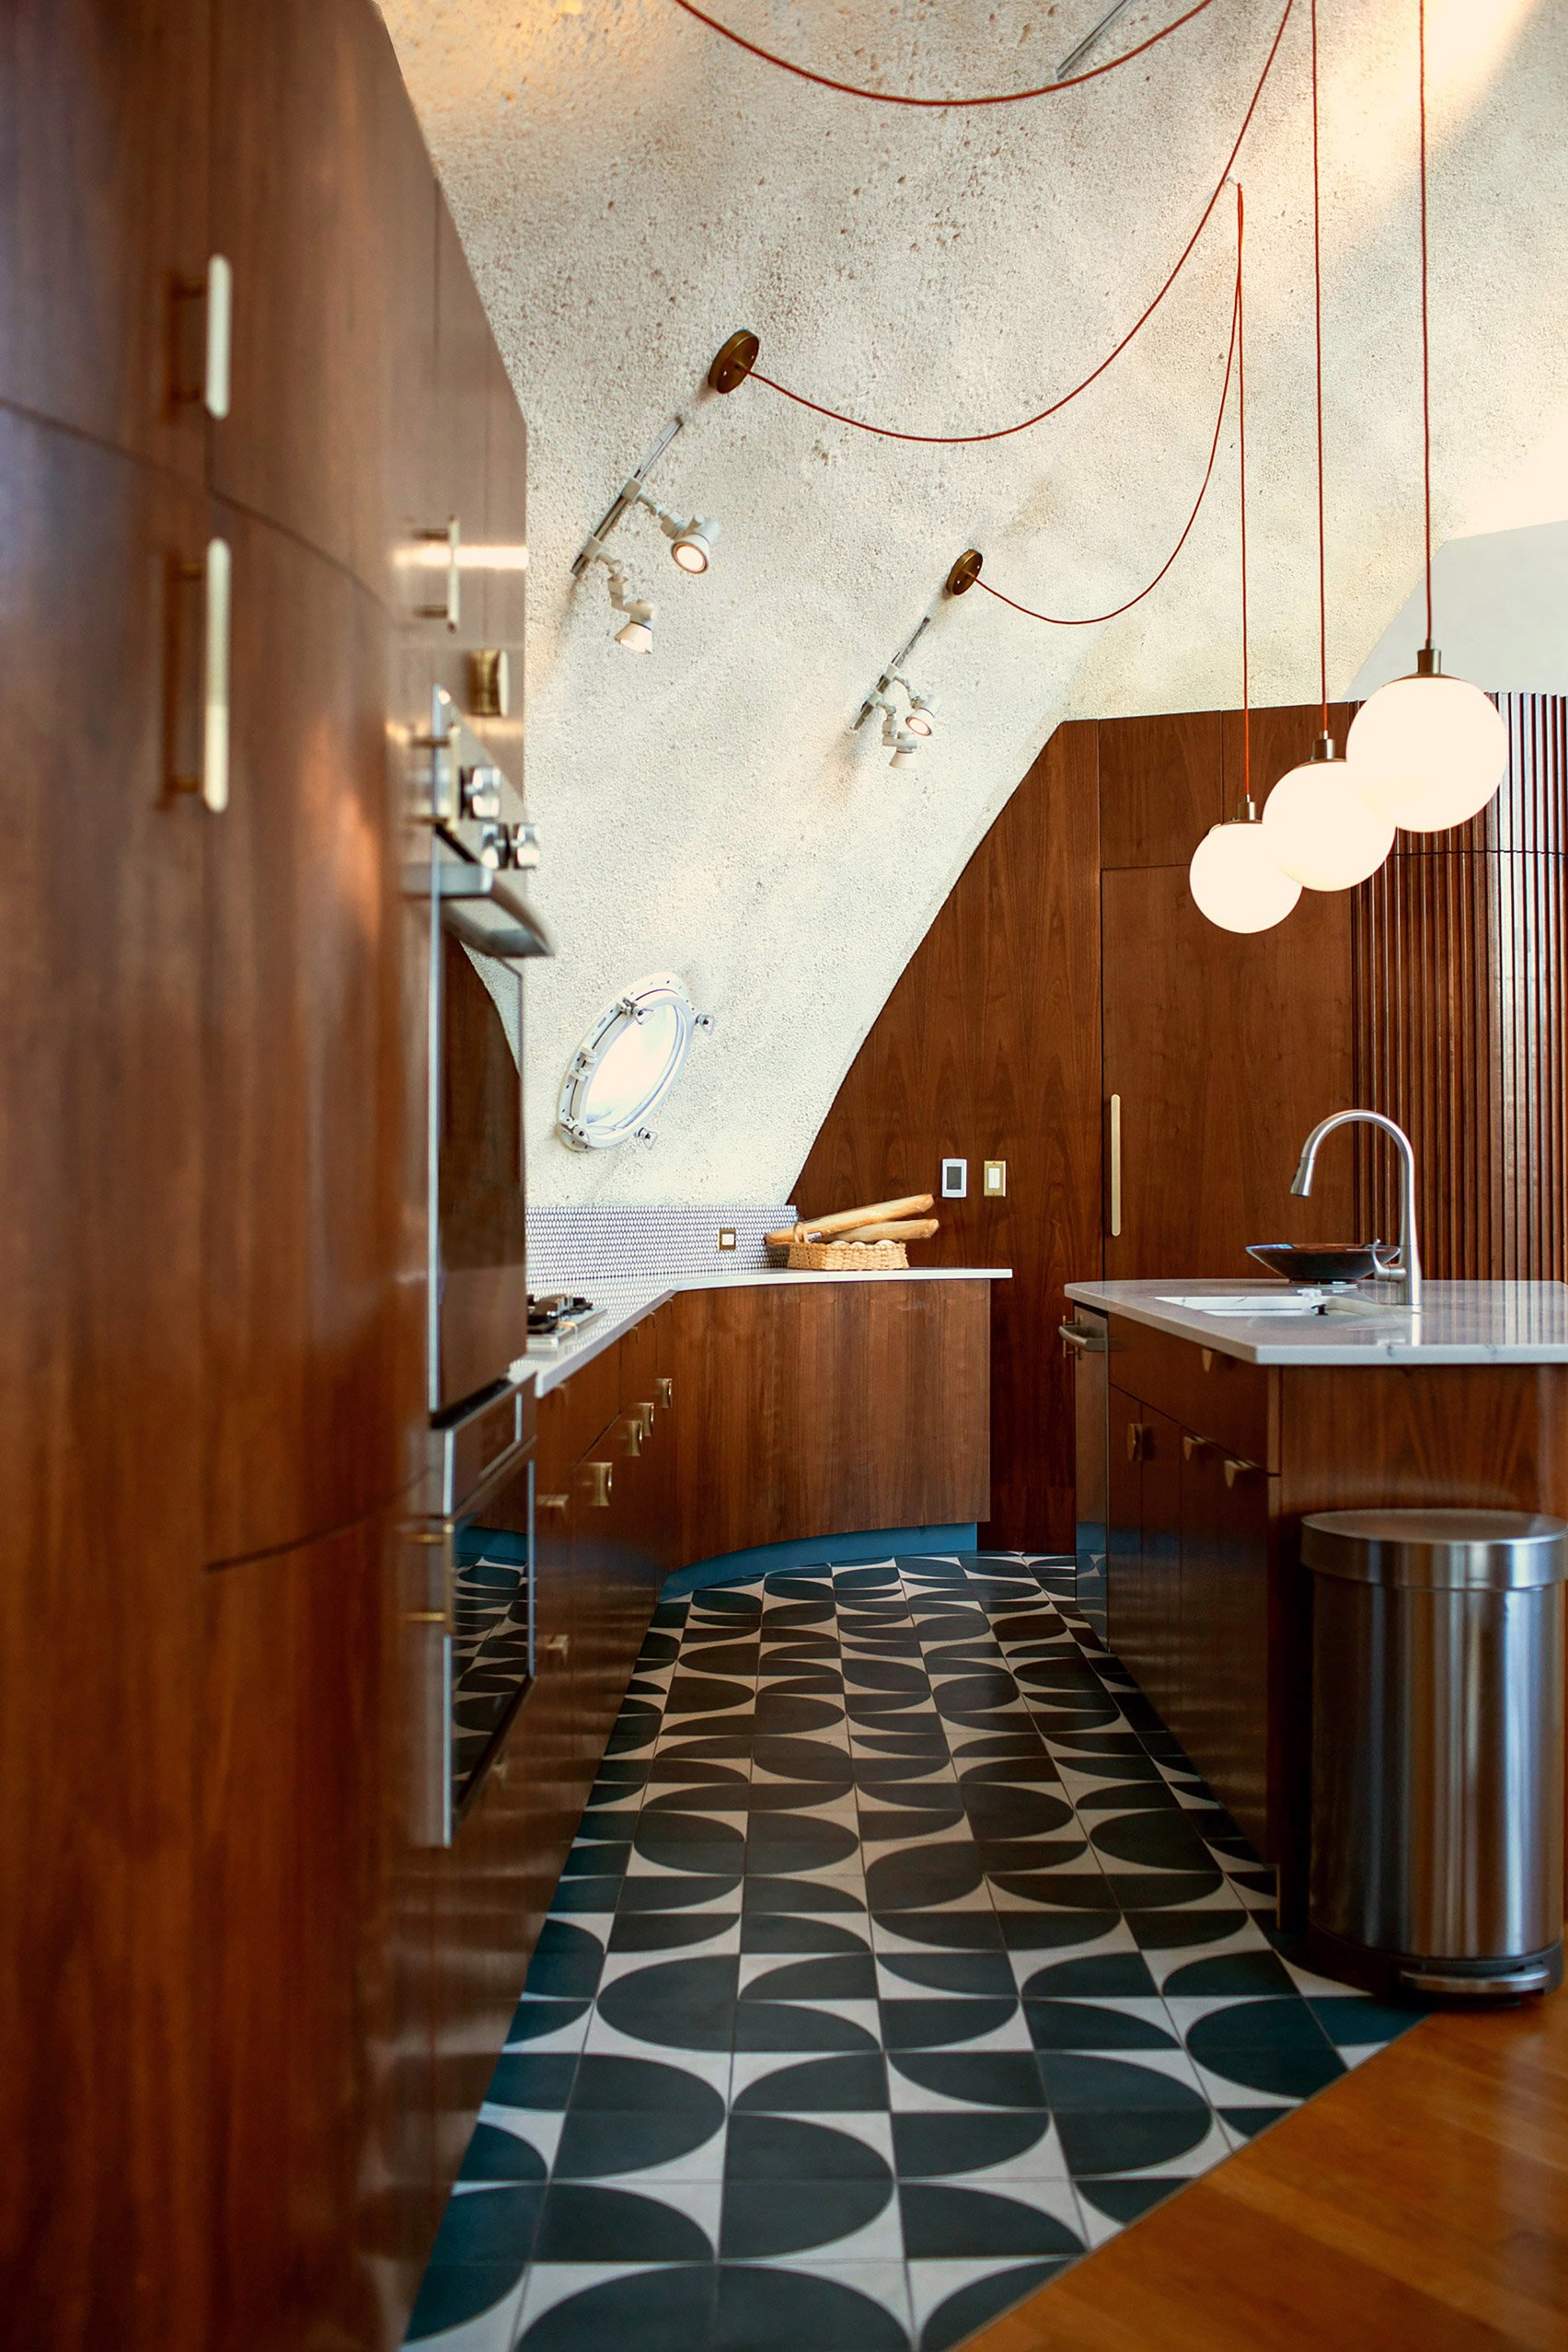 Kitchen cabinets designed by DAAM for Shell House